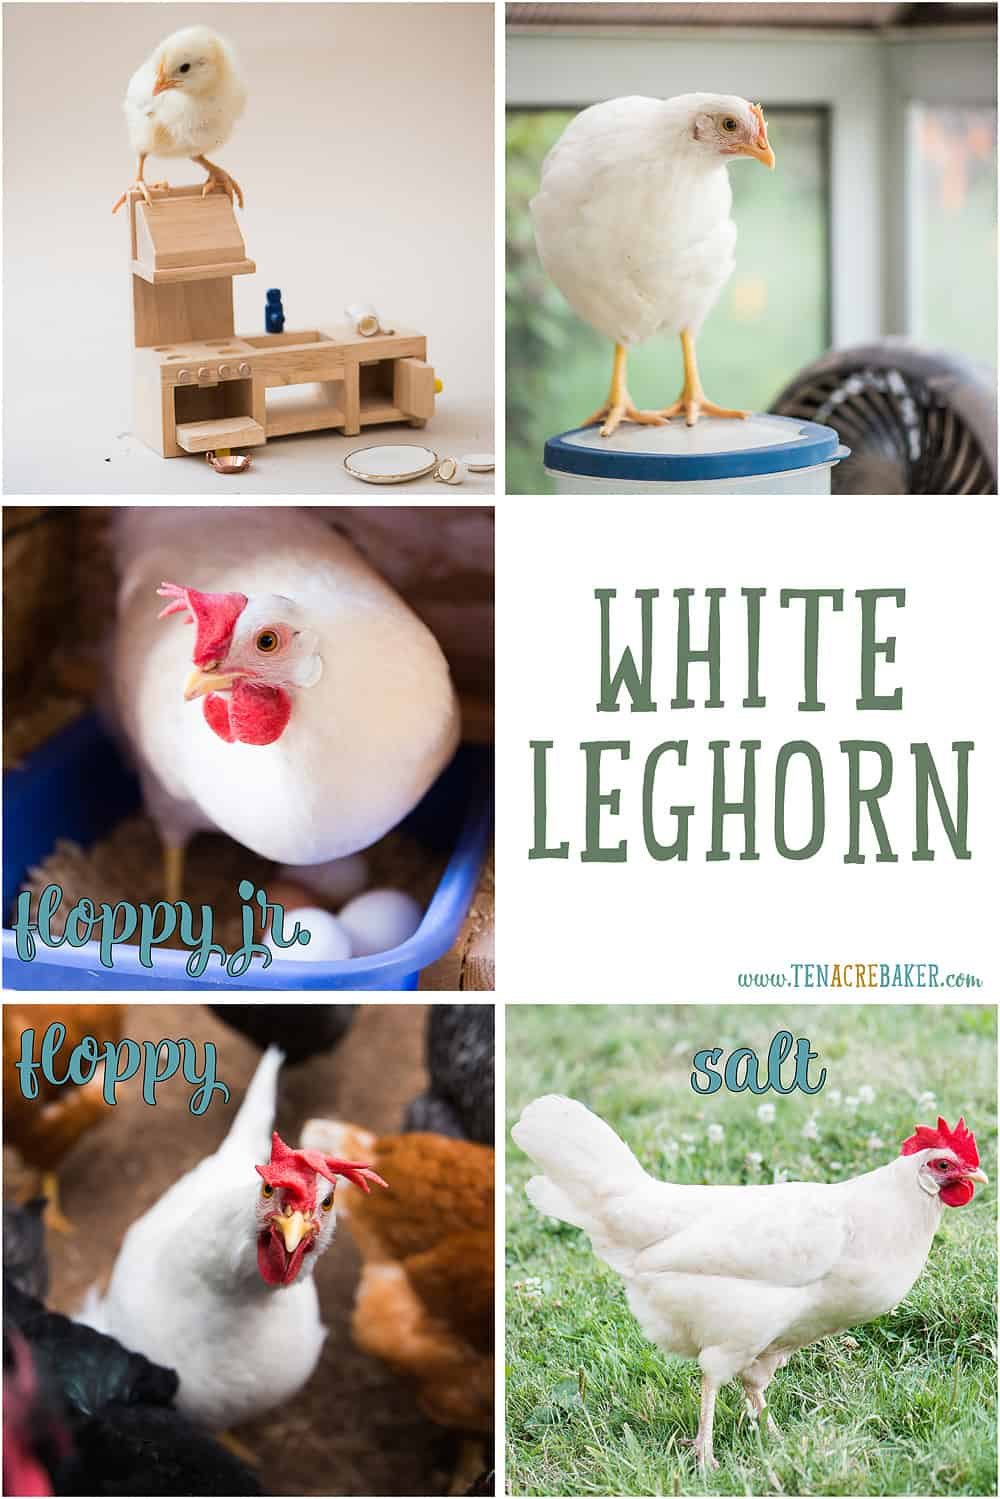 White Leghorn backyard chickens